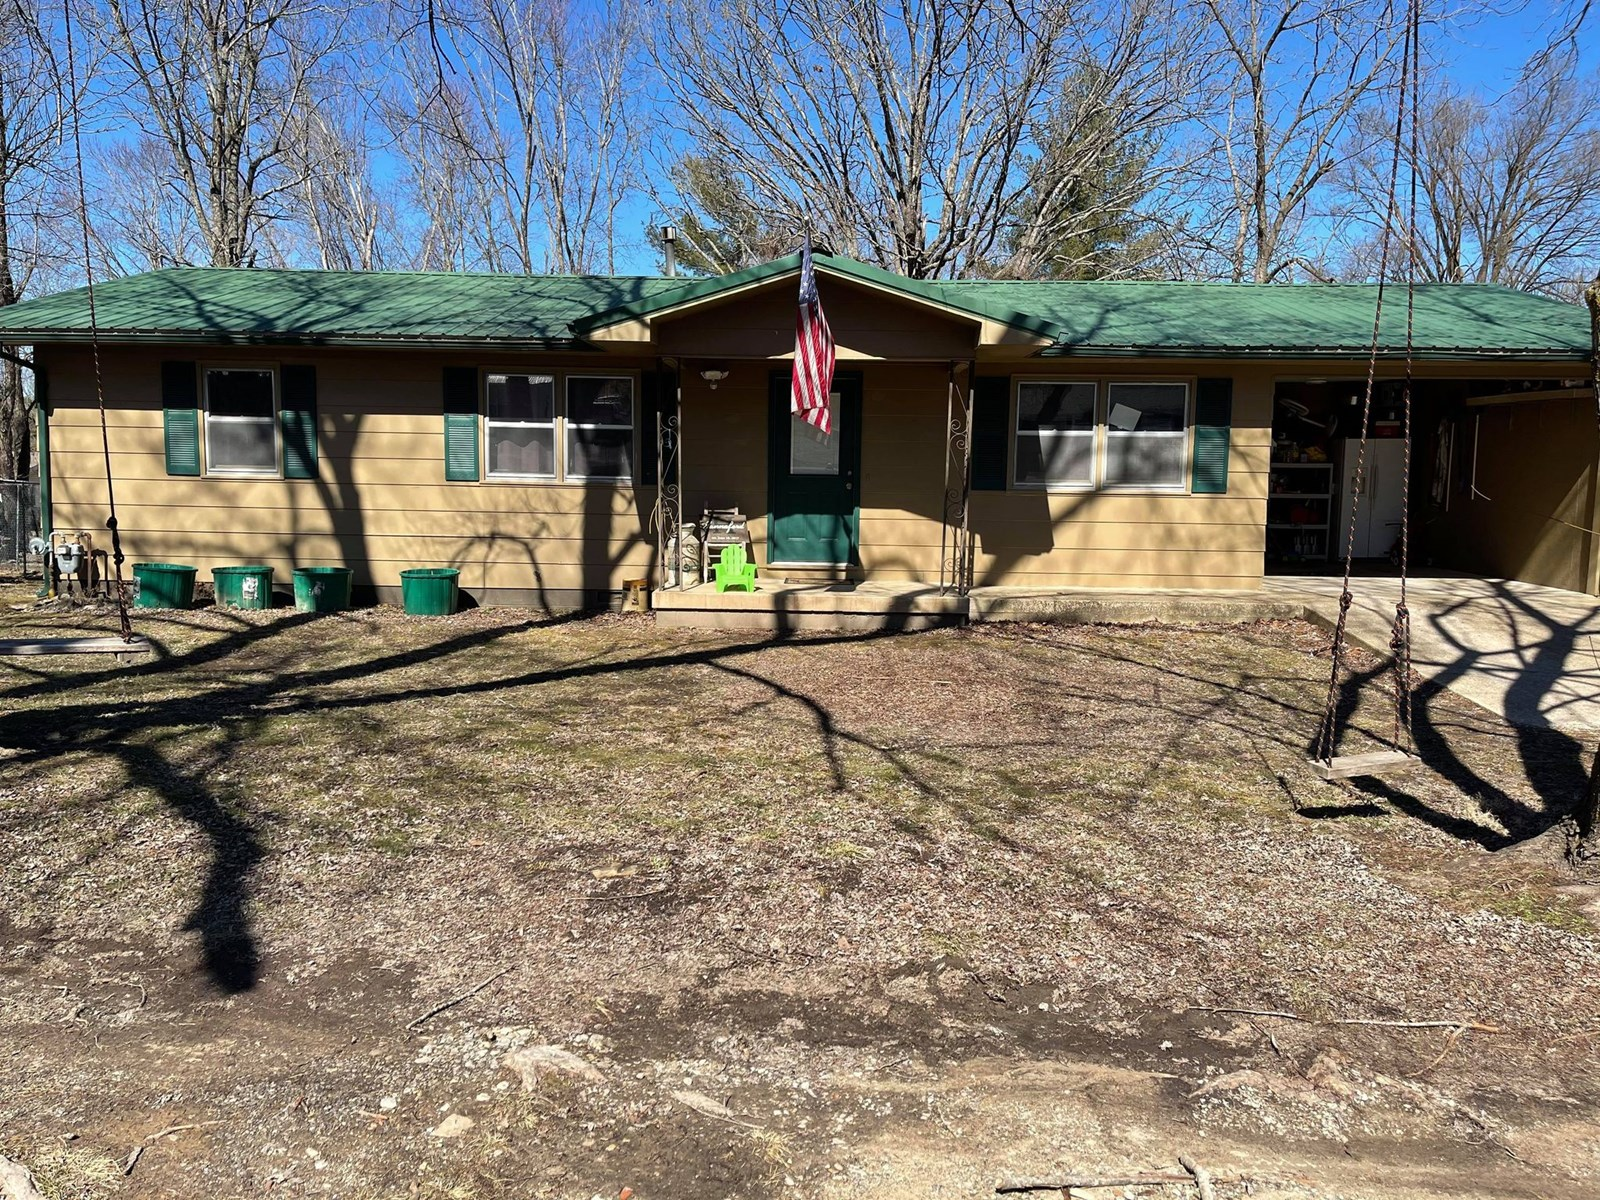 House for sale in Ava, Mo.